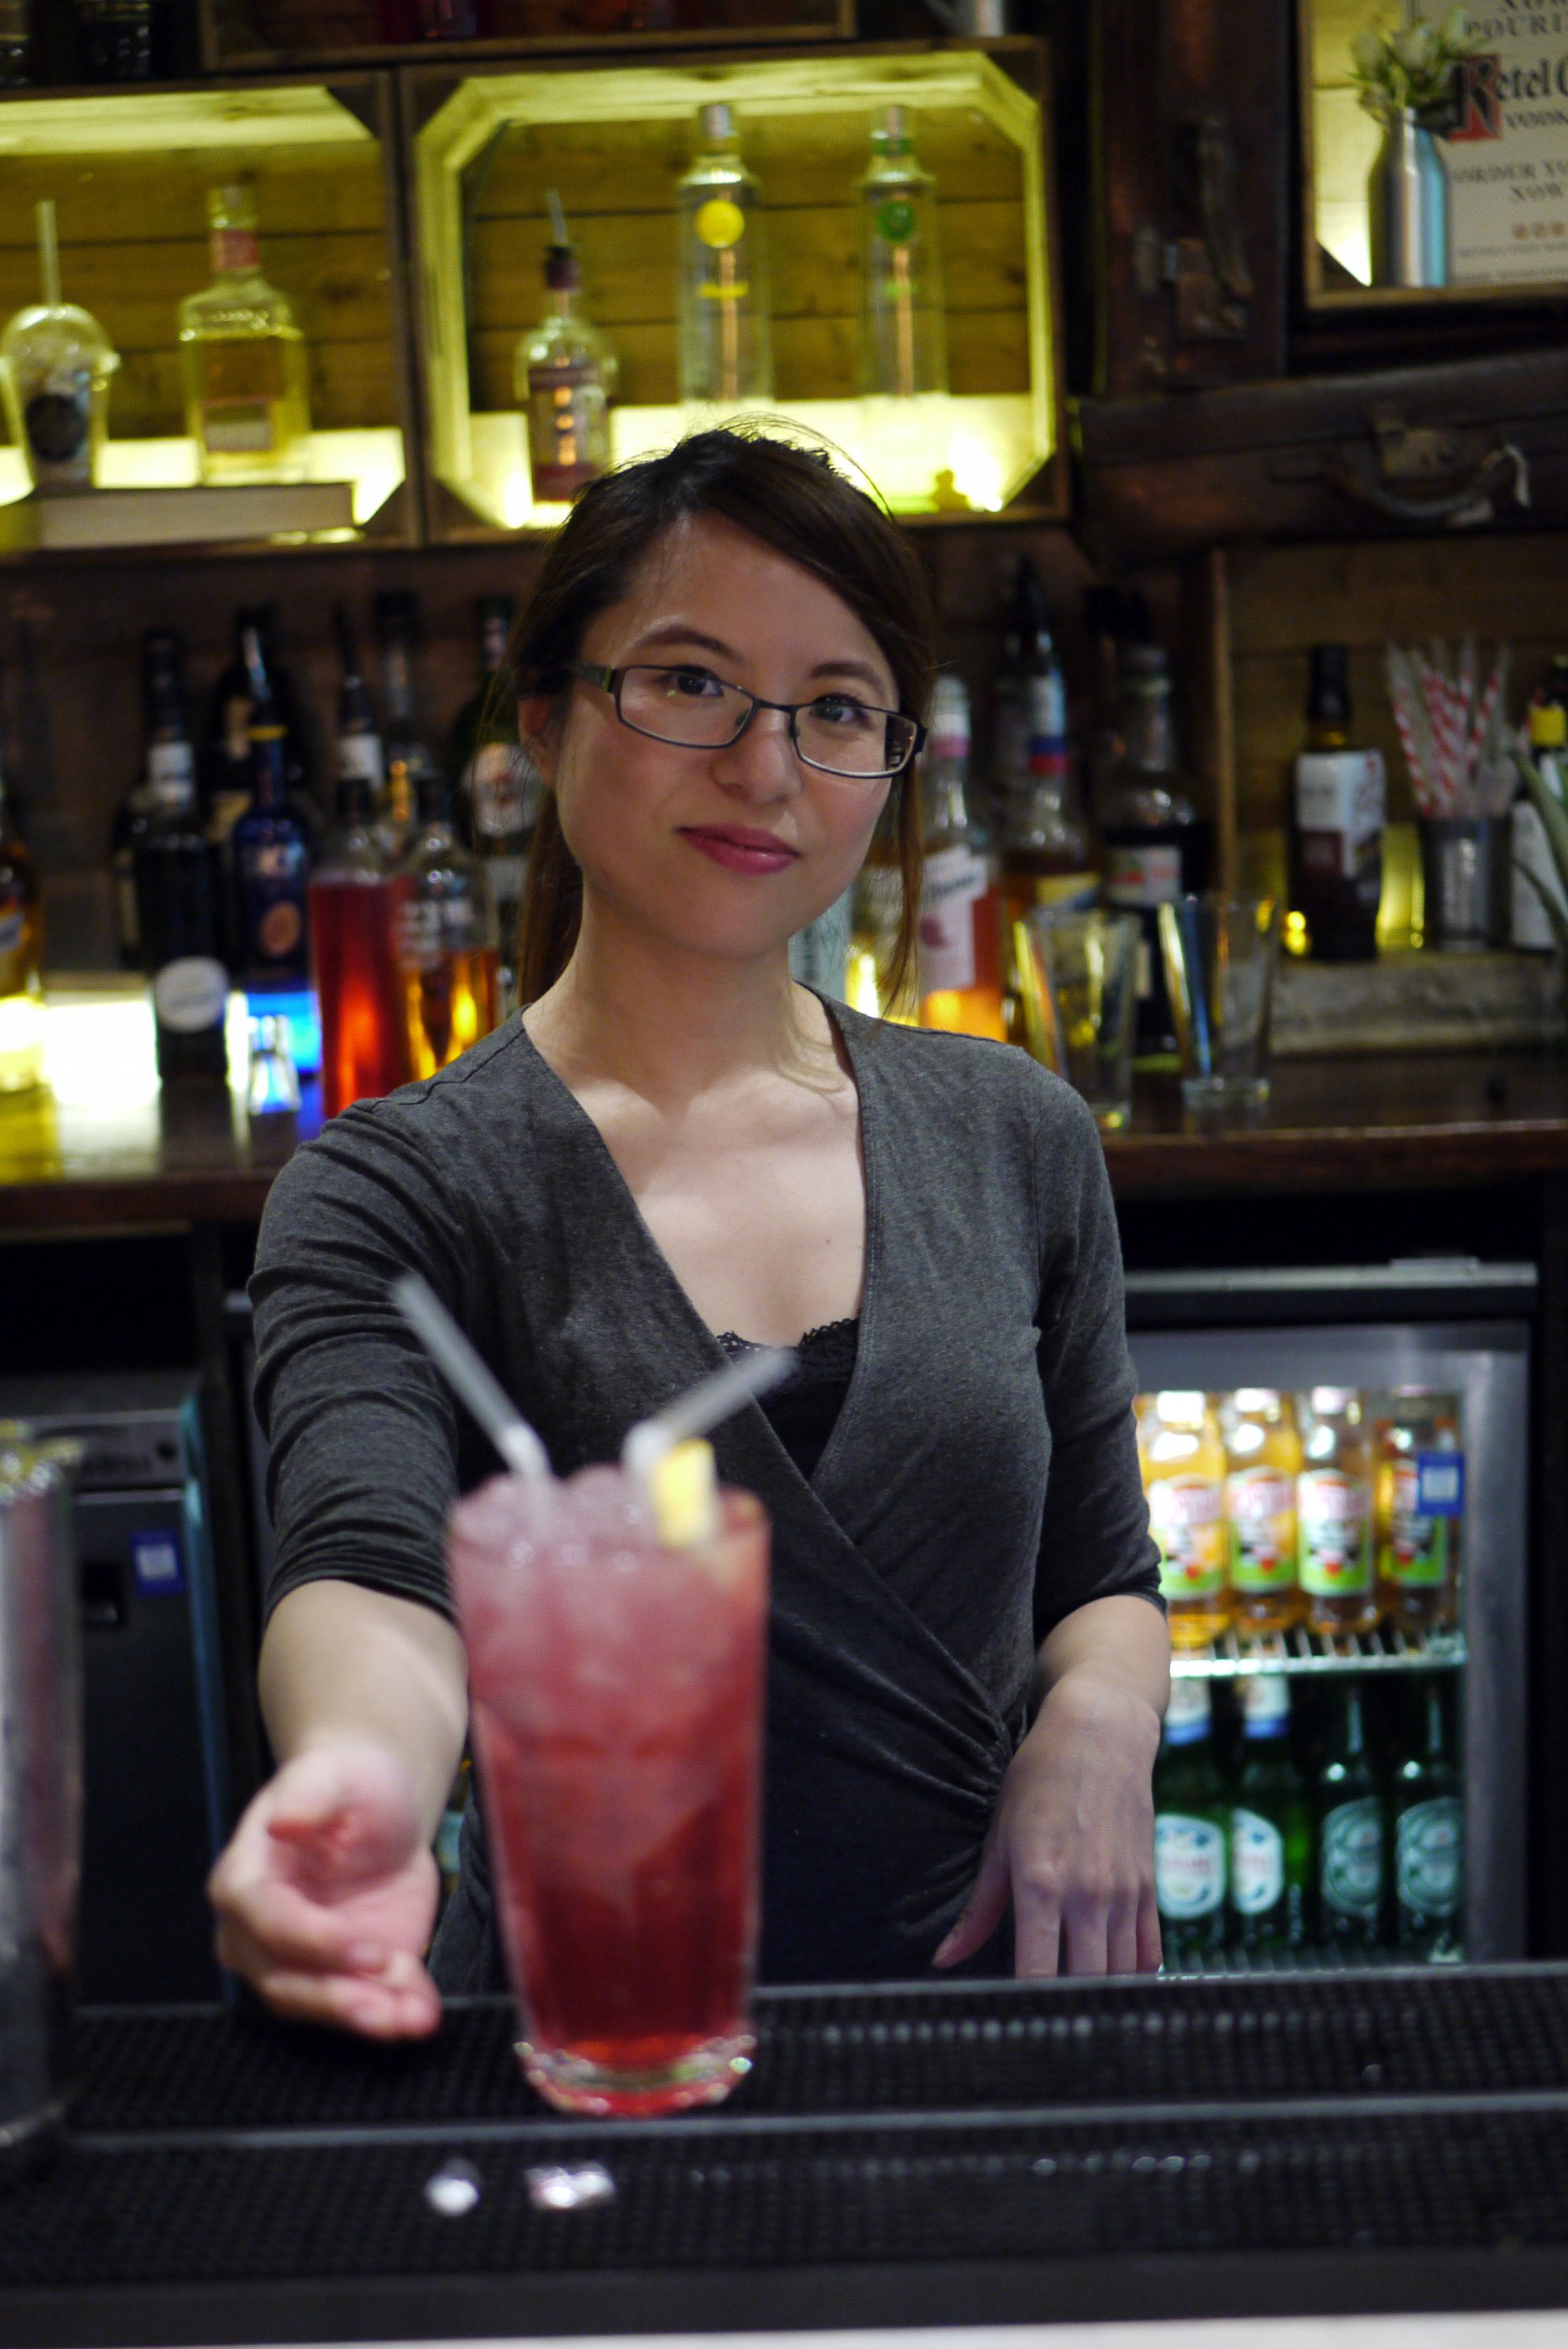 Me with my cocktail challenge